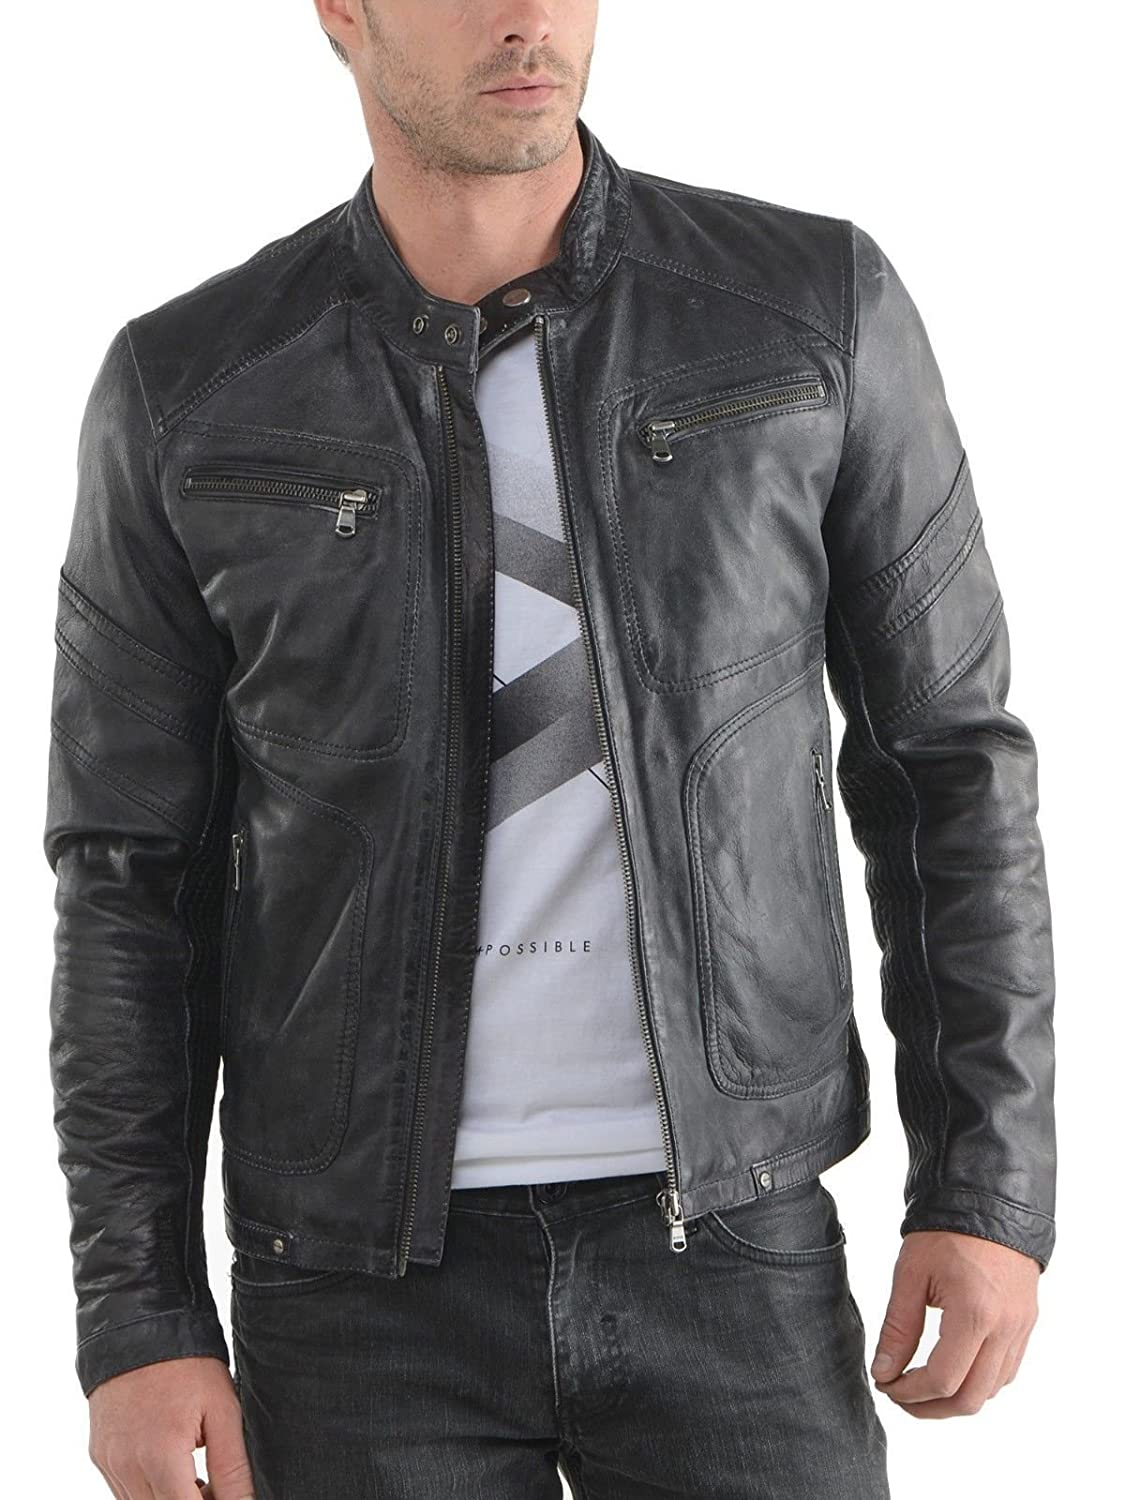 FarihaLeather Leather Men's Lambskin Leather Bomber Biker Jacket